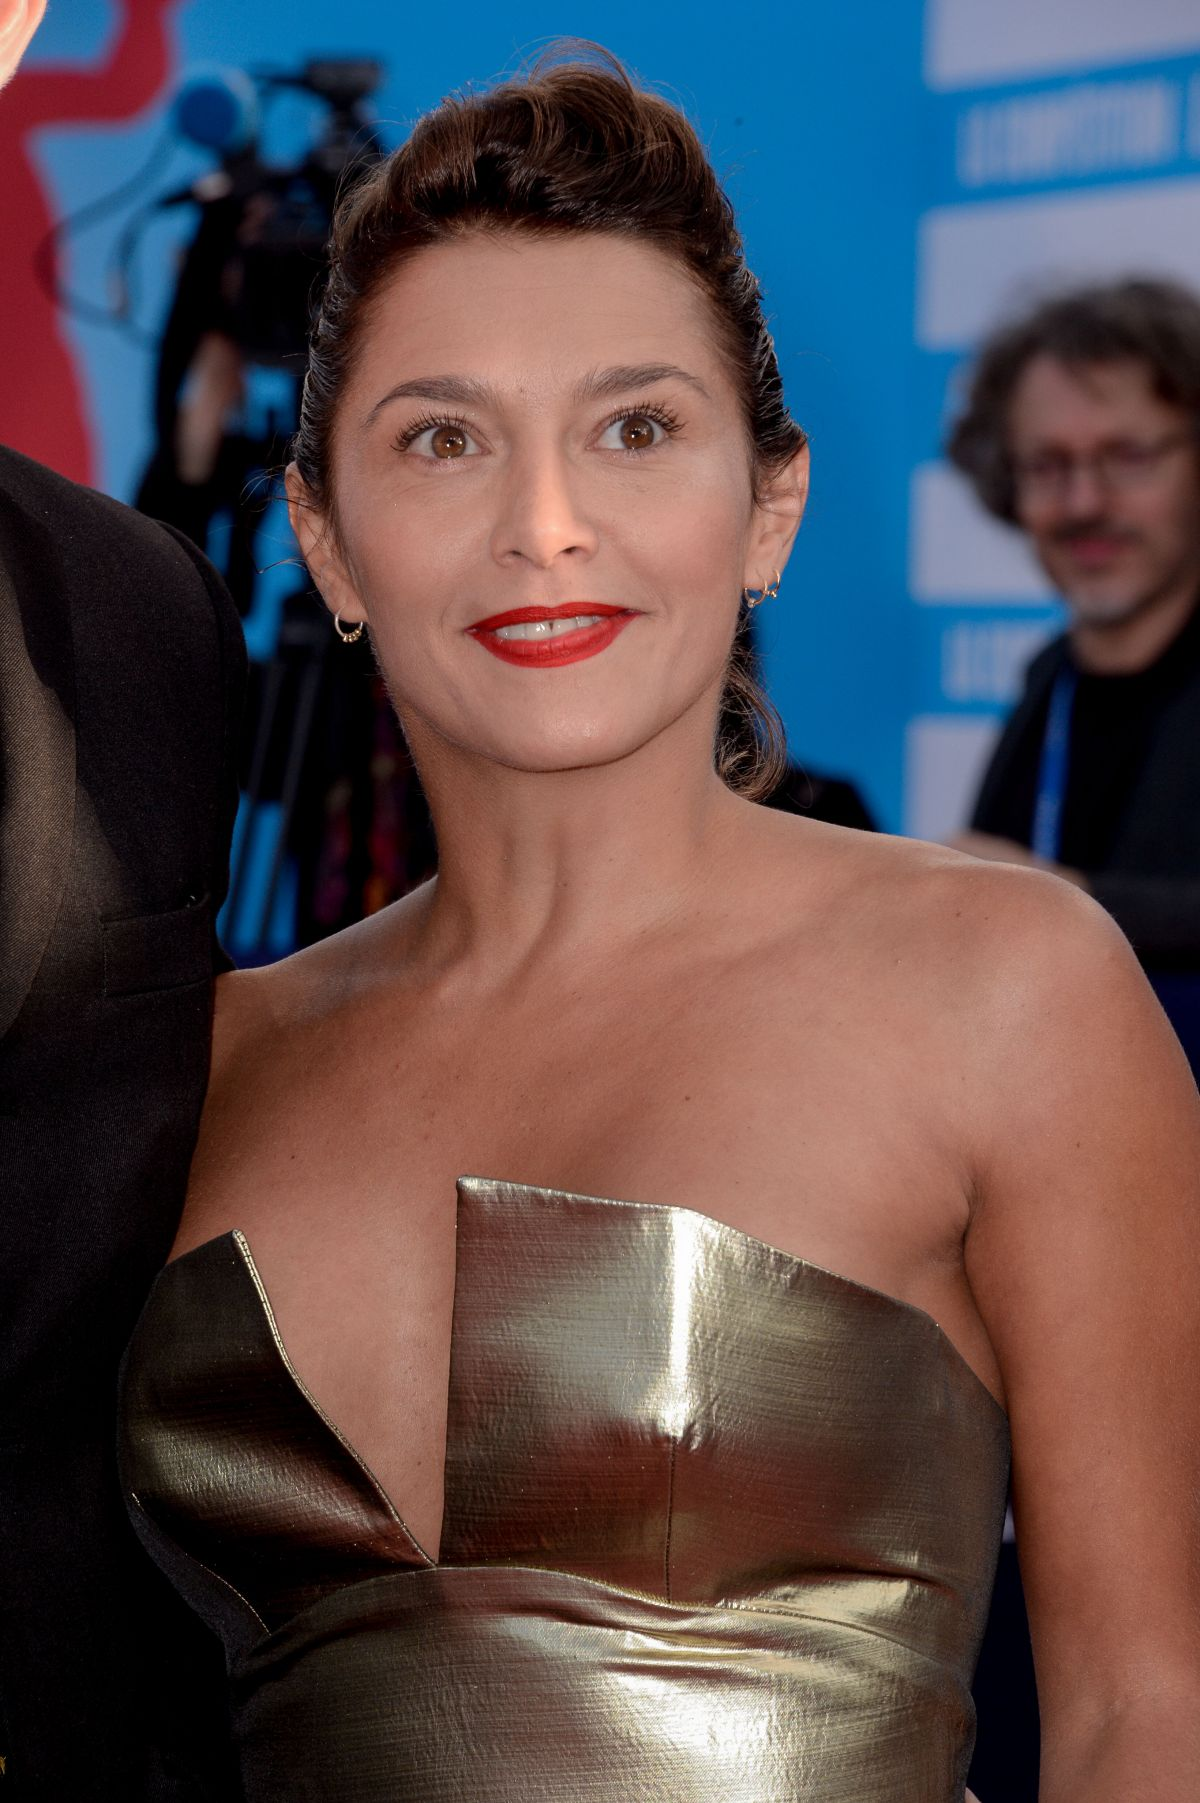 EMMA DE CAUNES at 43rd Deauville American Film Festival Opening Ceremony 09/01/2017